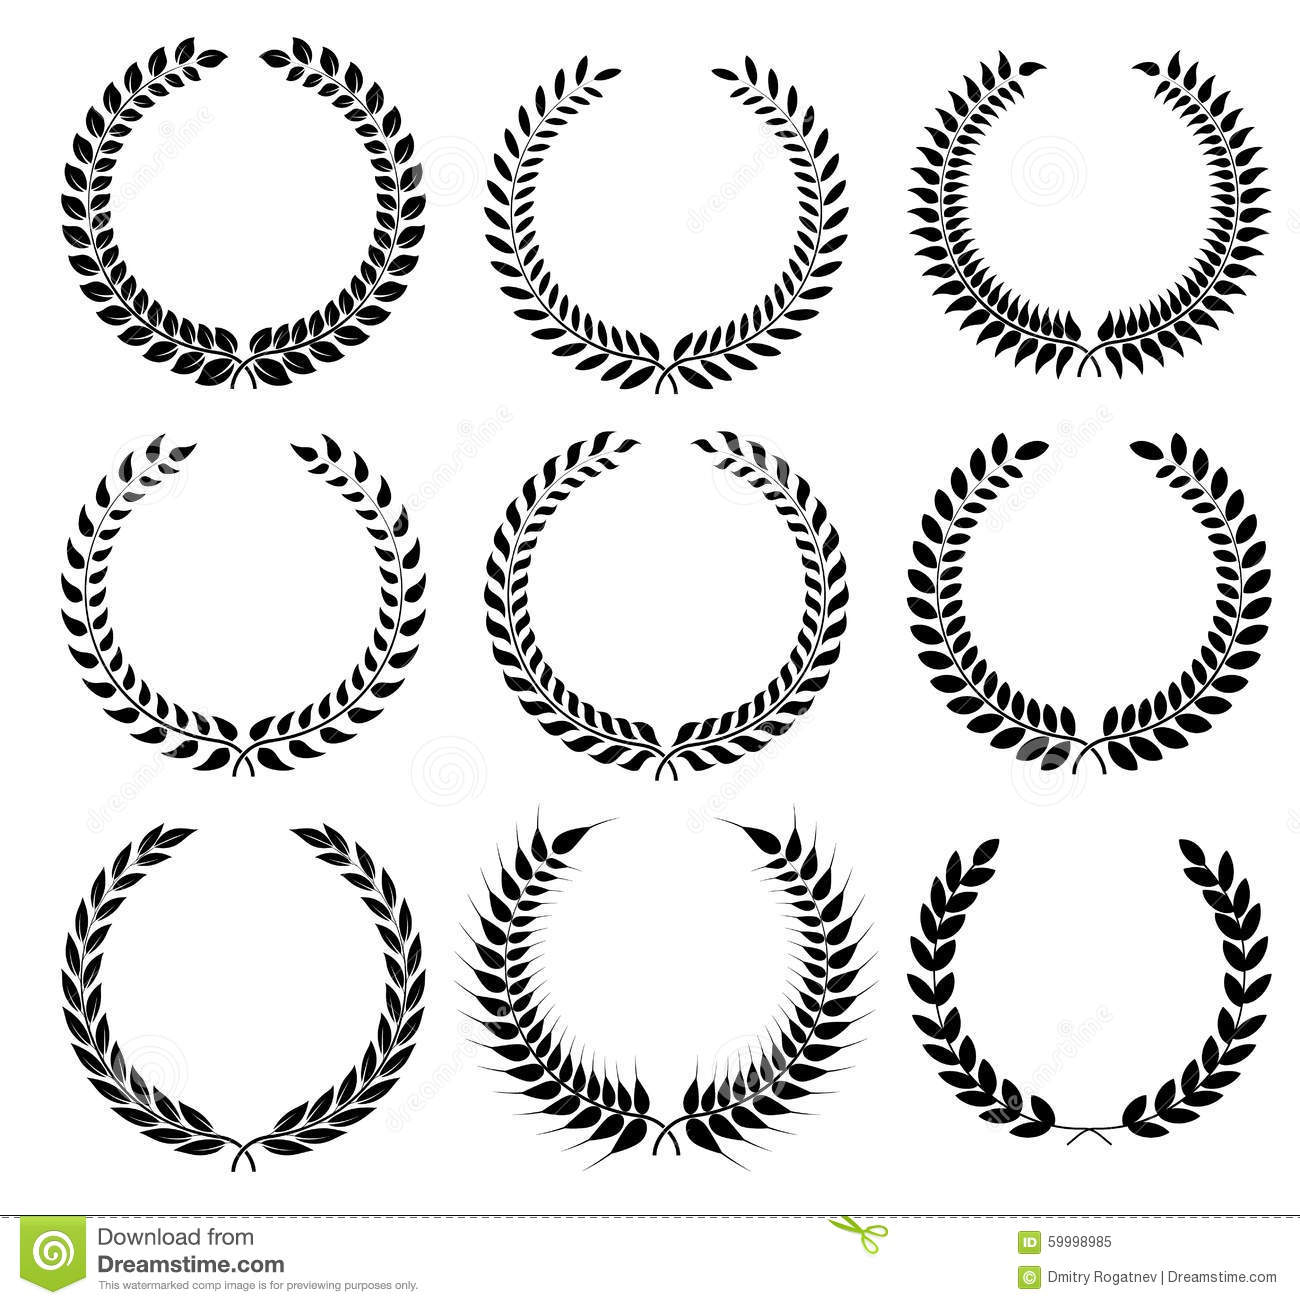 Stock Illustration Laurel Wreath Symbol Victory Achievement Set Design Element Construction Medals Awards Coat Arms Anniversary Image59998985 additionally Stock Illustration Collection Of Crown Silhouette Symbols together with 215725 furthermore Stock Illustration Crown Icons moreover Free Clipart 5142. on queen crown clipart black and white